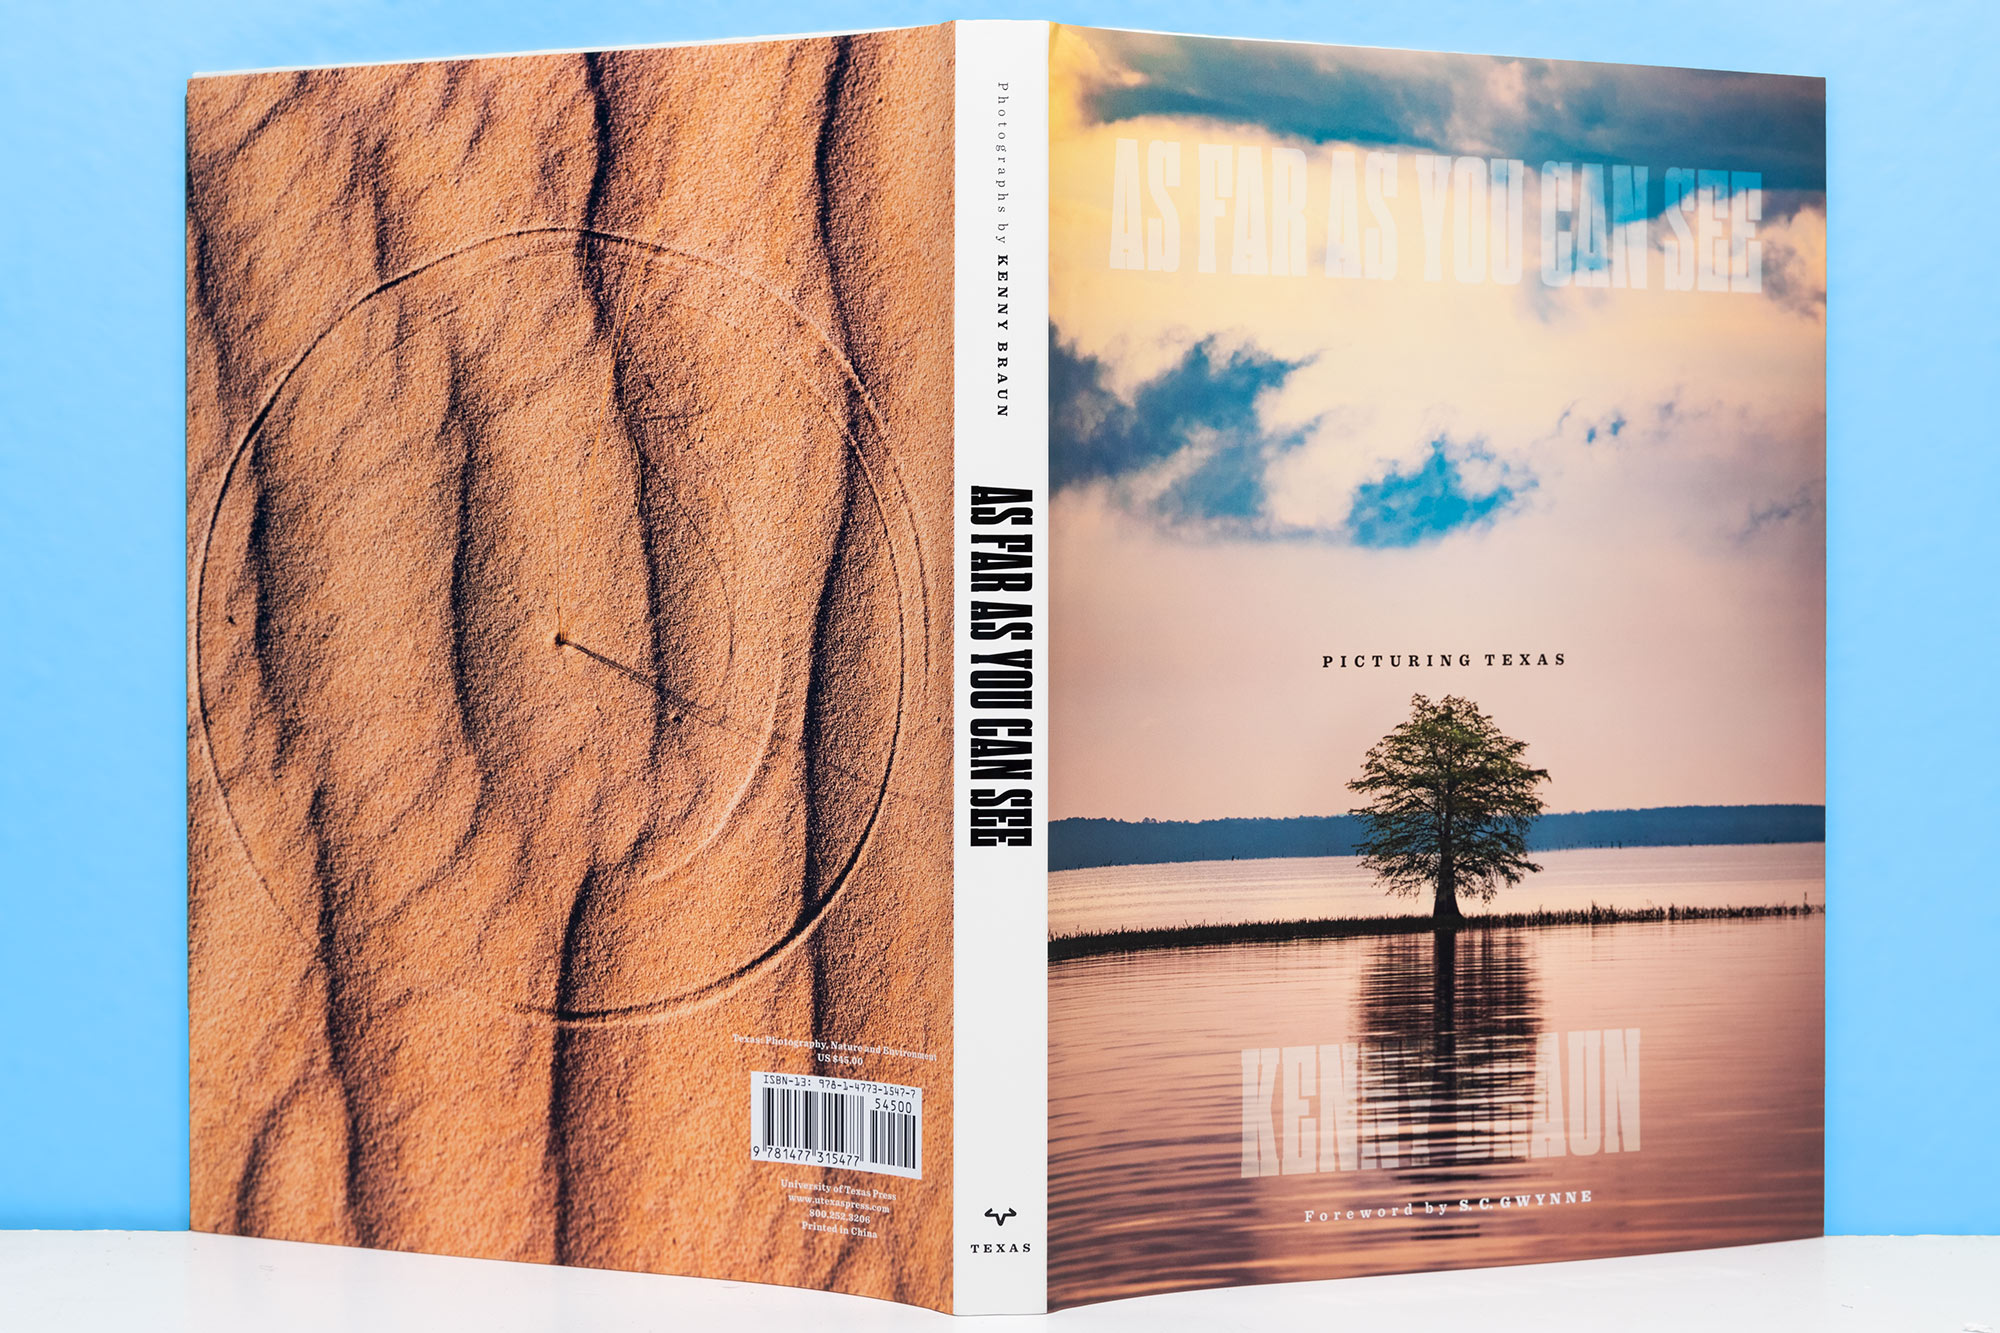 As Far As You Can See  - Texas landscape photography book